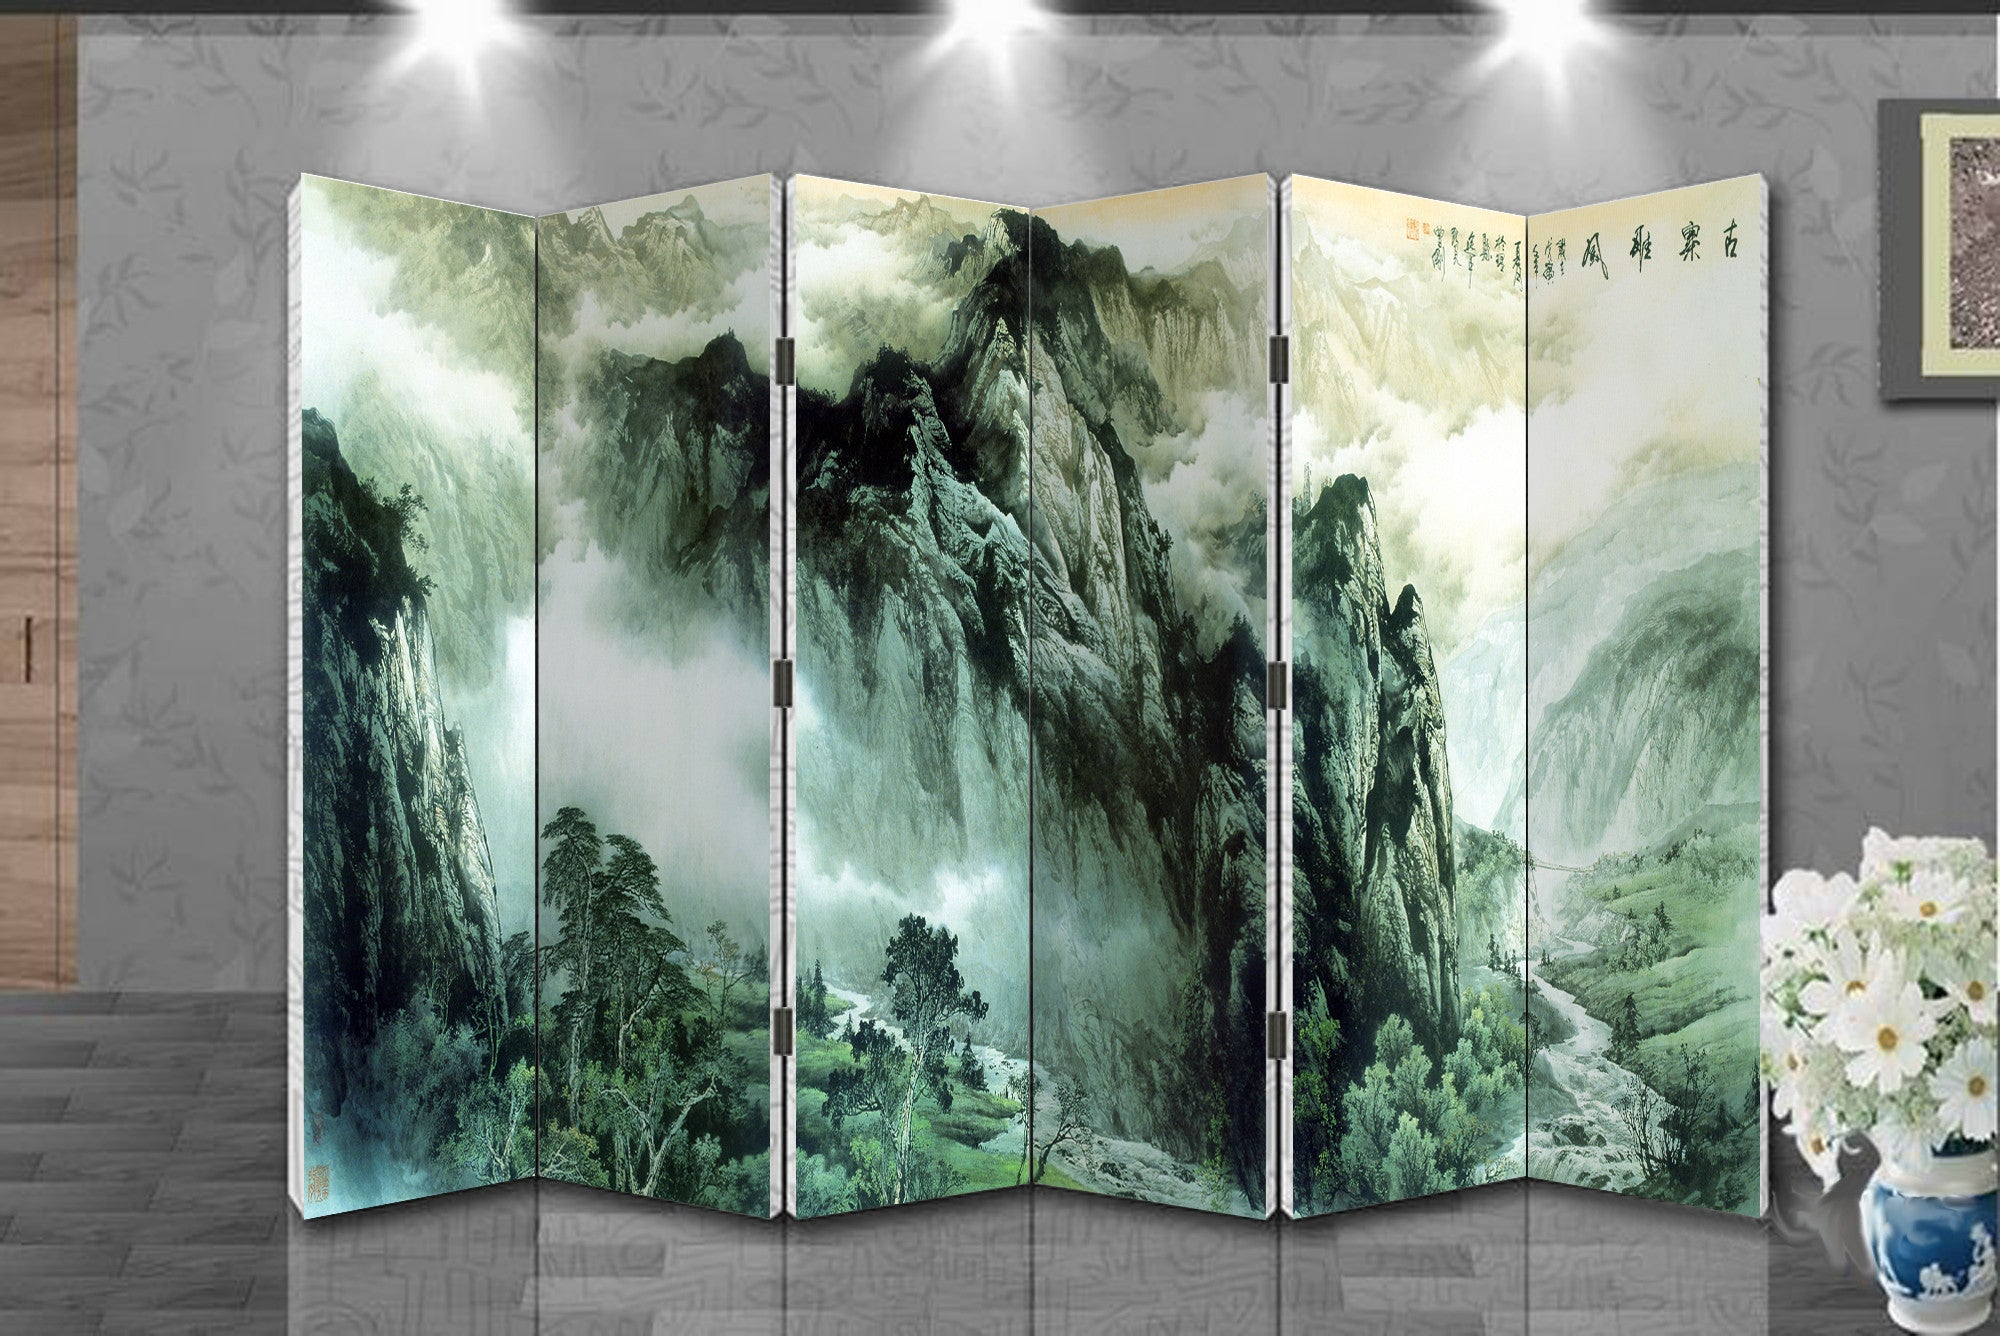 Oriental Style 6 Panel Foldable Shoji Screen Room Divider Chinese Painting Mountain Valley